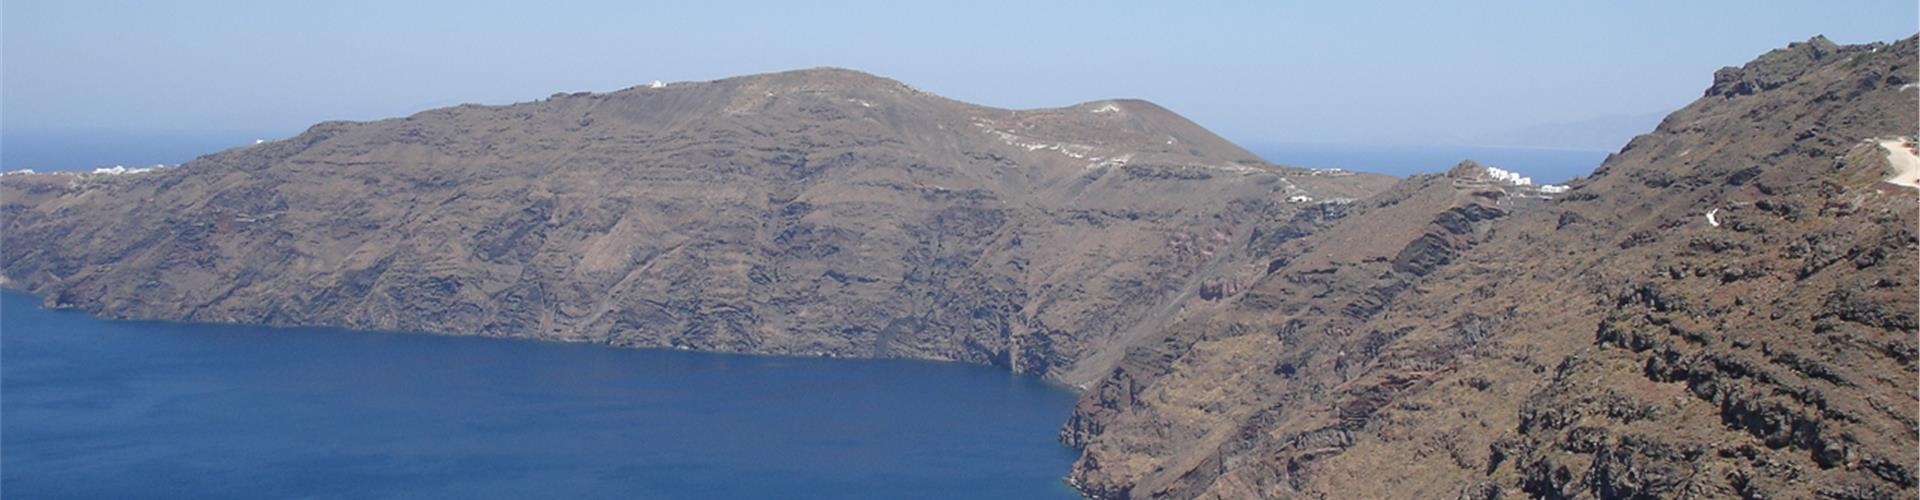 Where can you go on a day trip from Santorini?